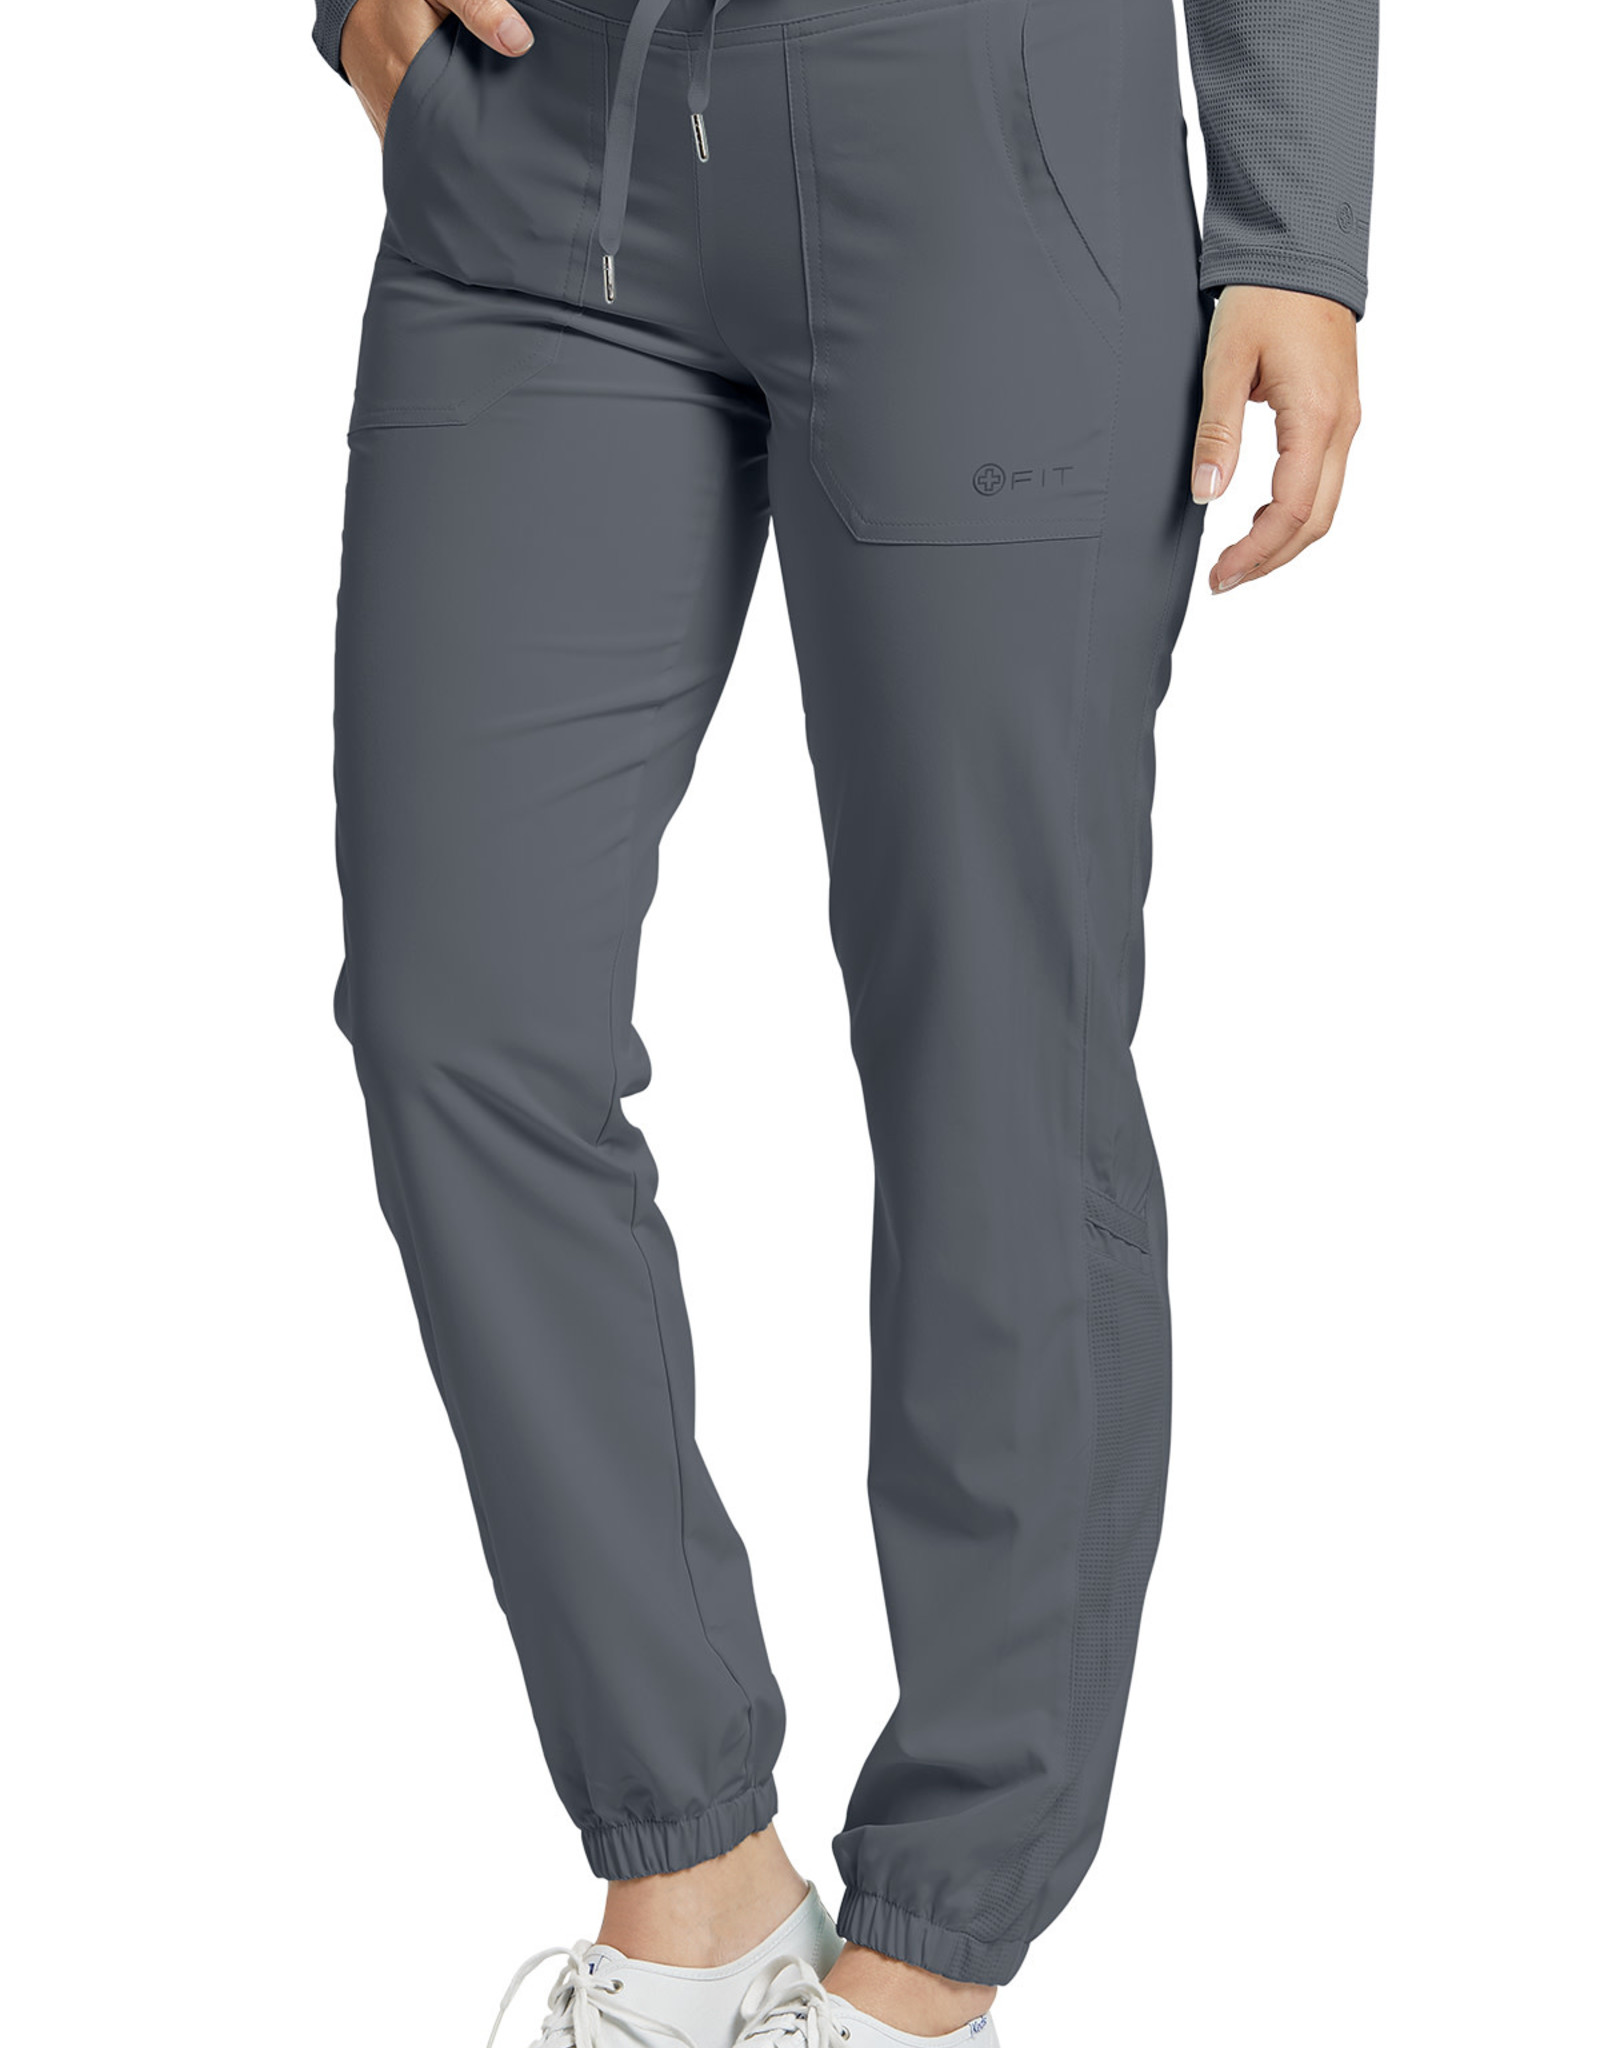 White Cross Fit Pantalon Fit Jogger Petite 399P